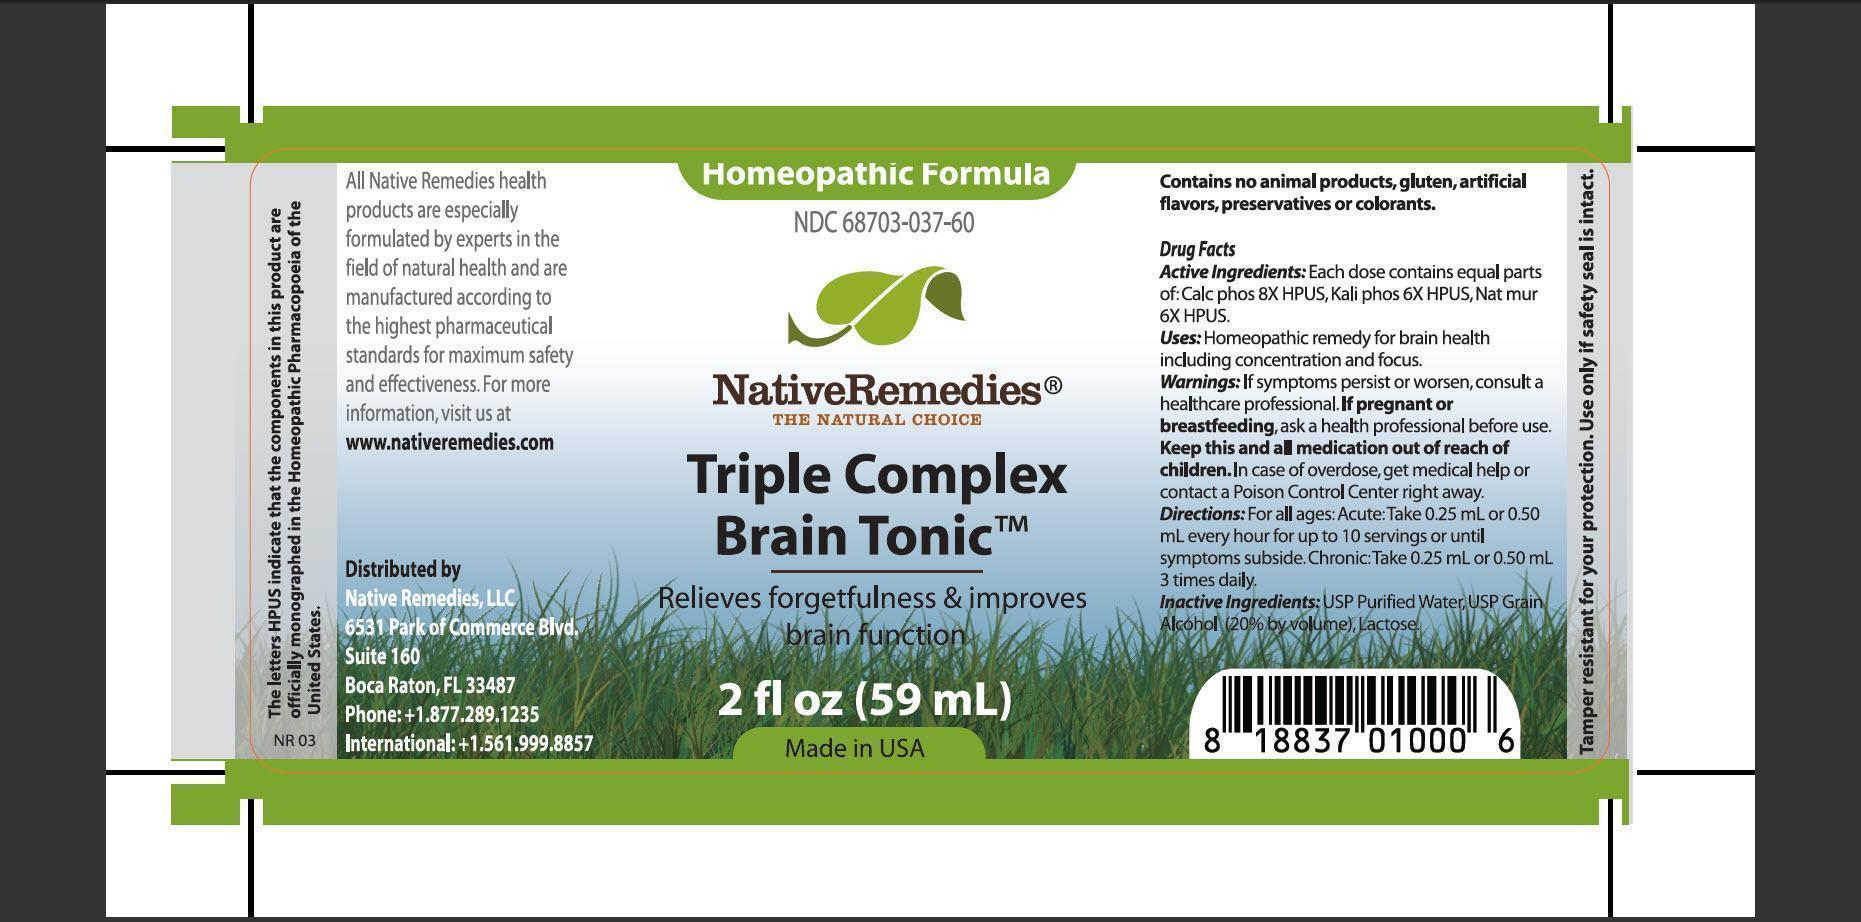 Triple Complex Brain Tonic (Calc Phos, Kali Phos, Nat Mur) Tincture [Native Remedies, Llc]